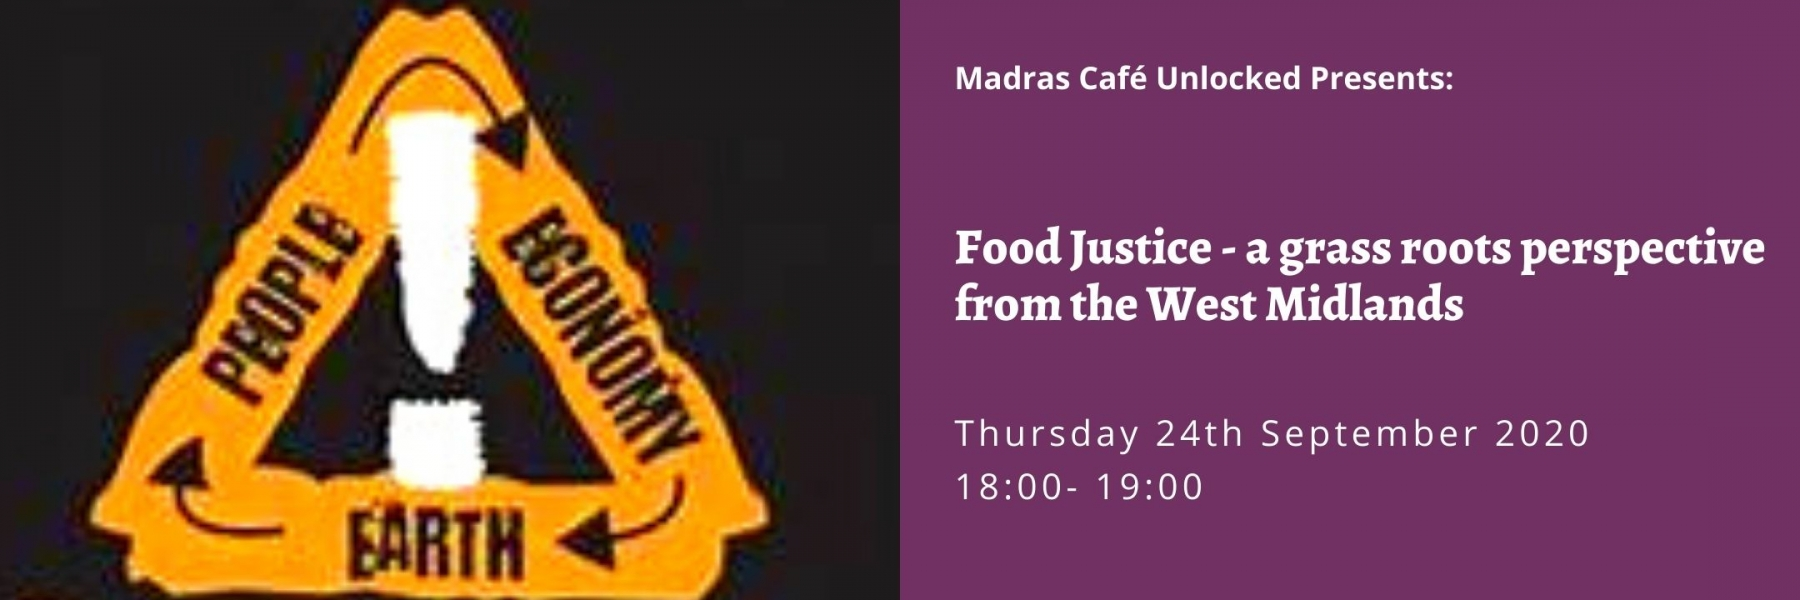 Food Justice - a grass roots perspective from the West Midlands